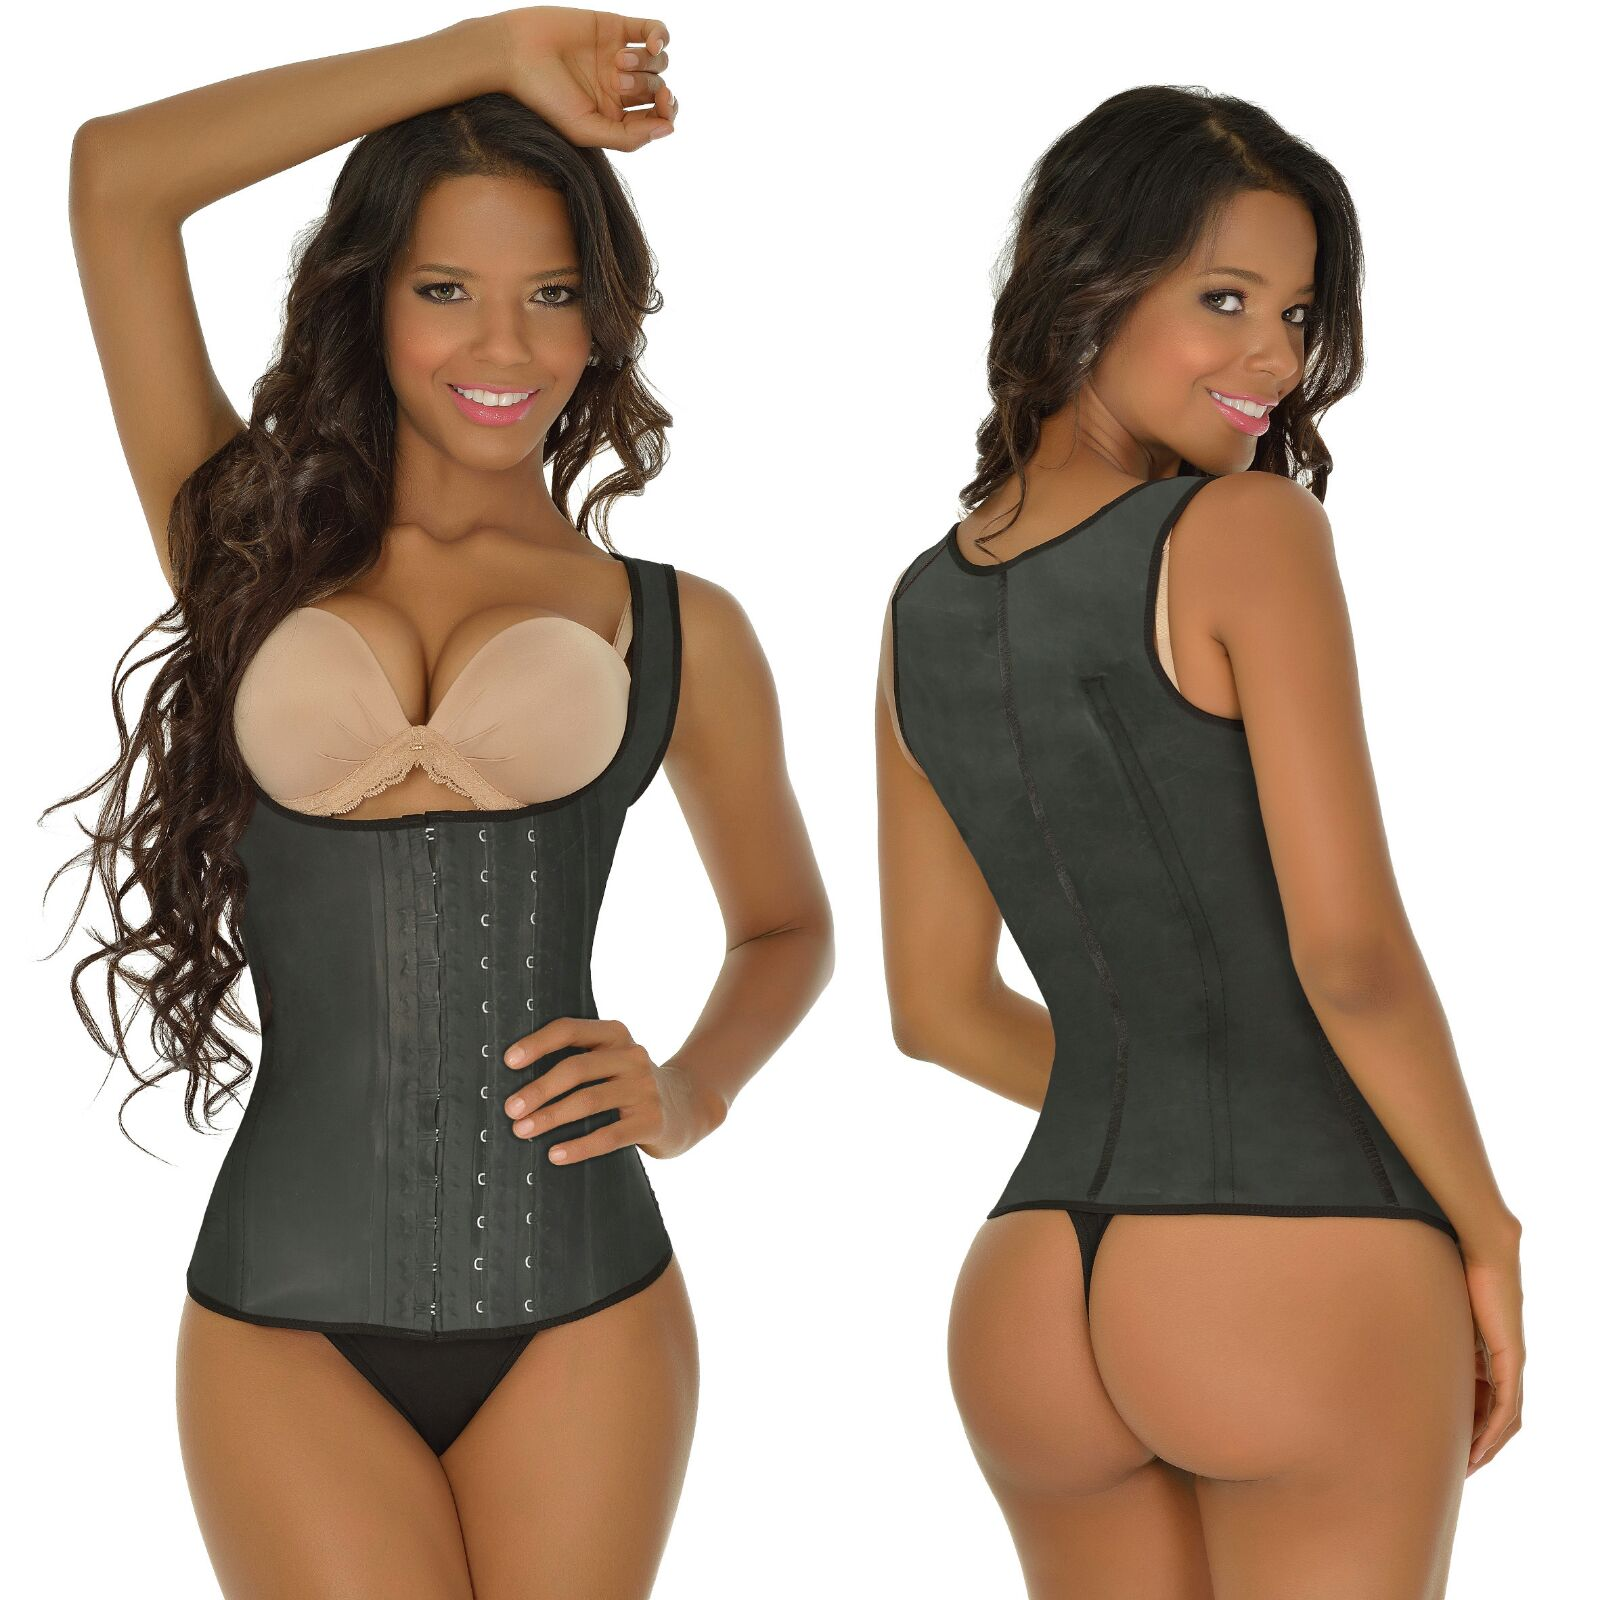 f8a302d2af5 2027D 3 Hooks Ann Michell Latex Vest - Catherines Fashion